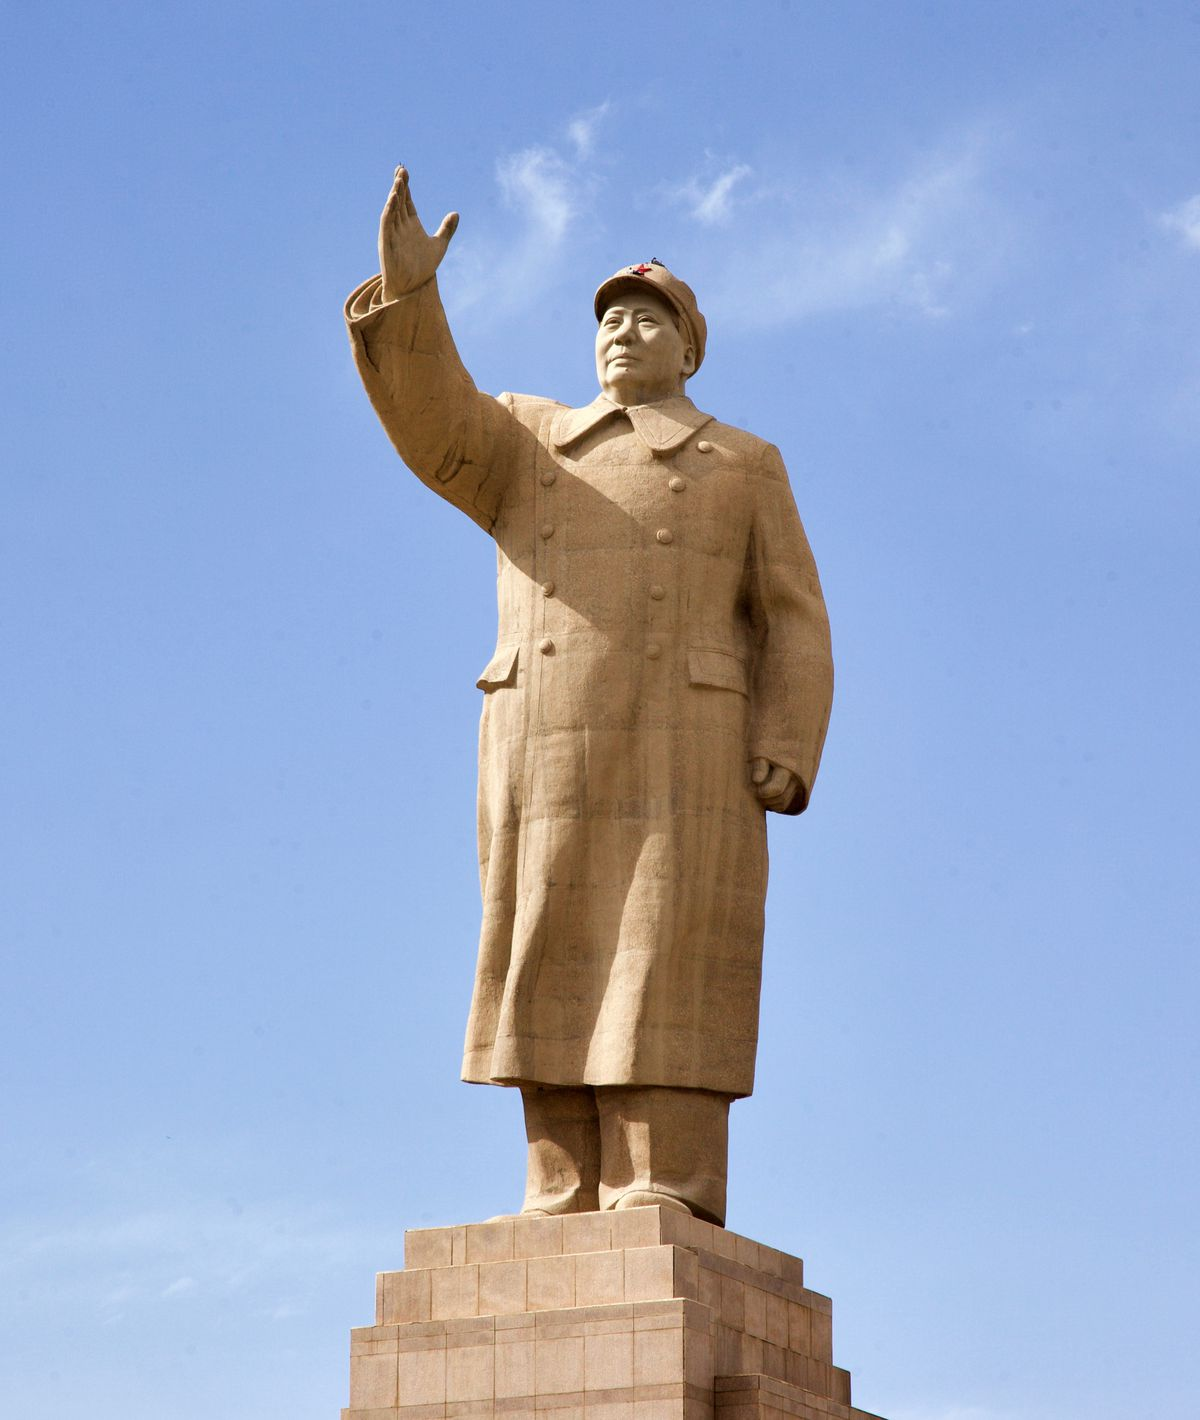 A statue of Mao Zedong in the Central Square of Kashgar, China.